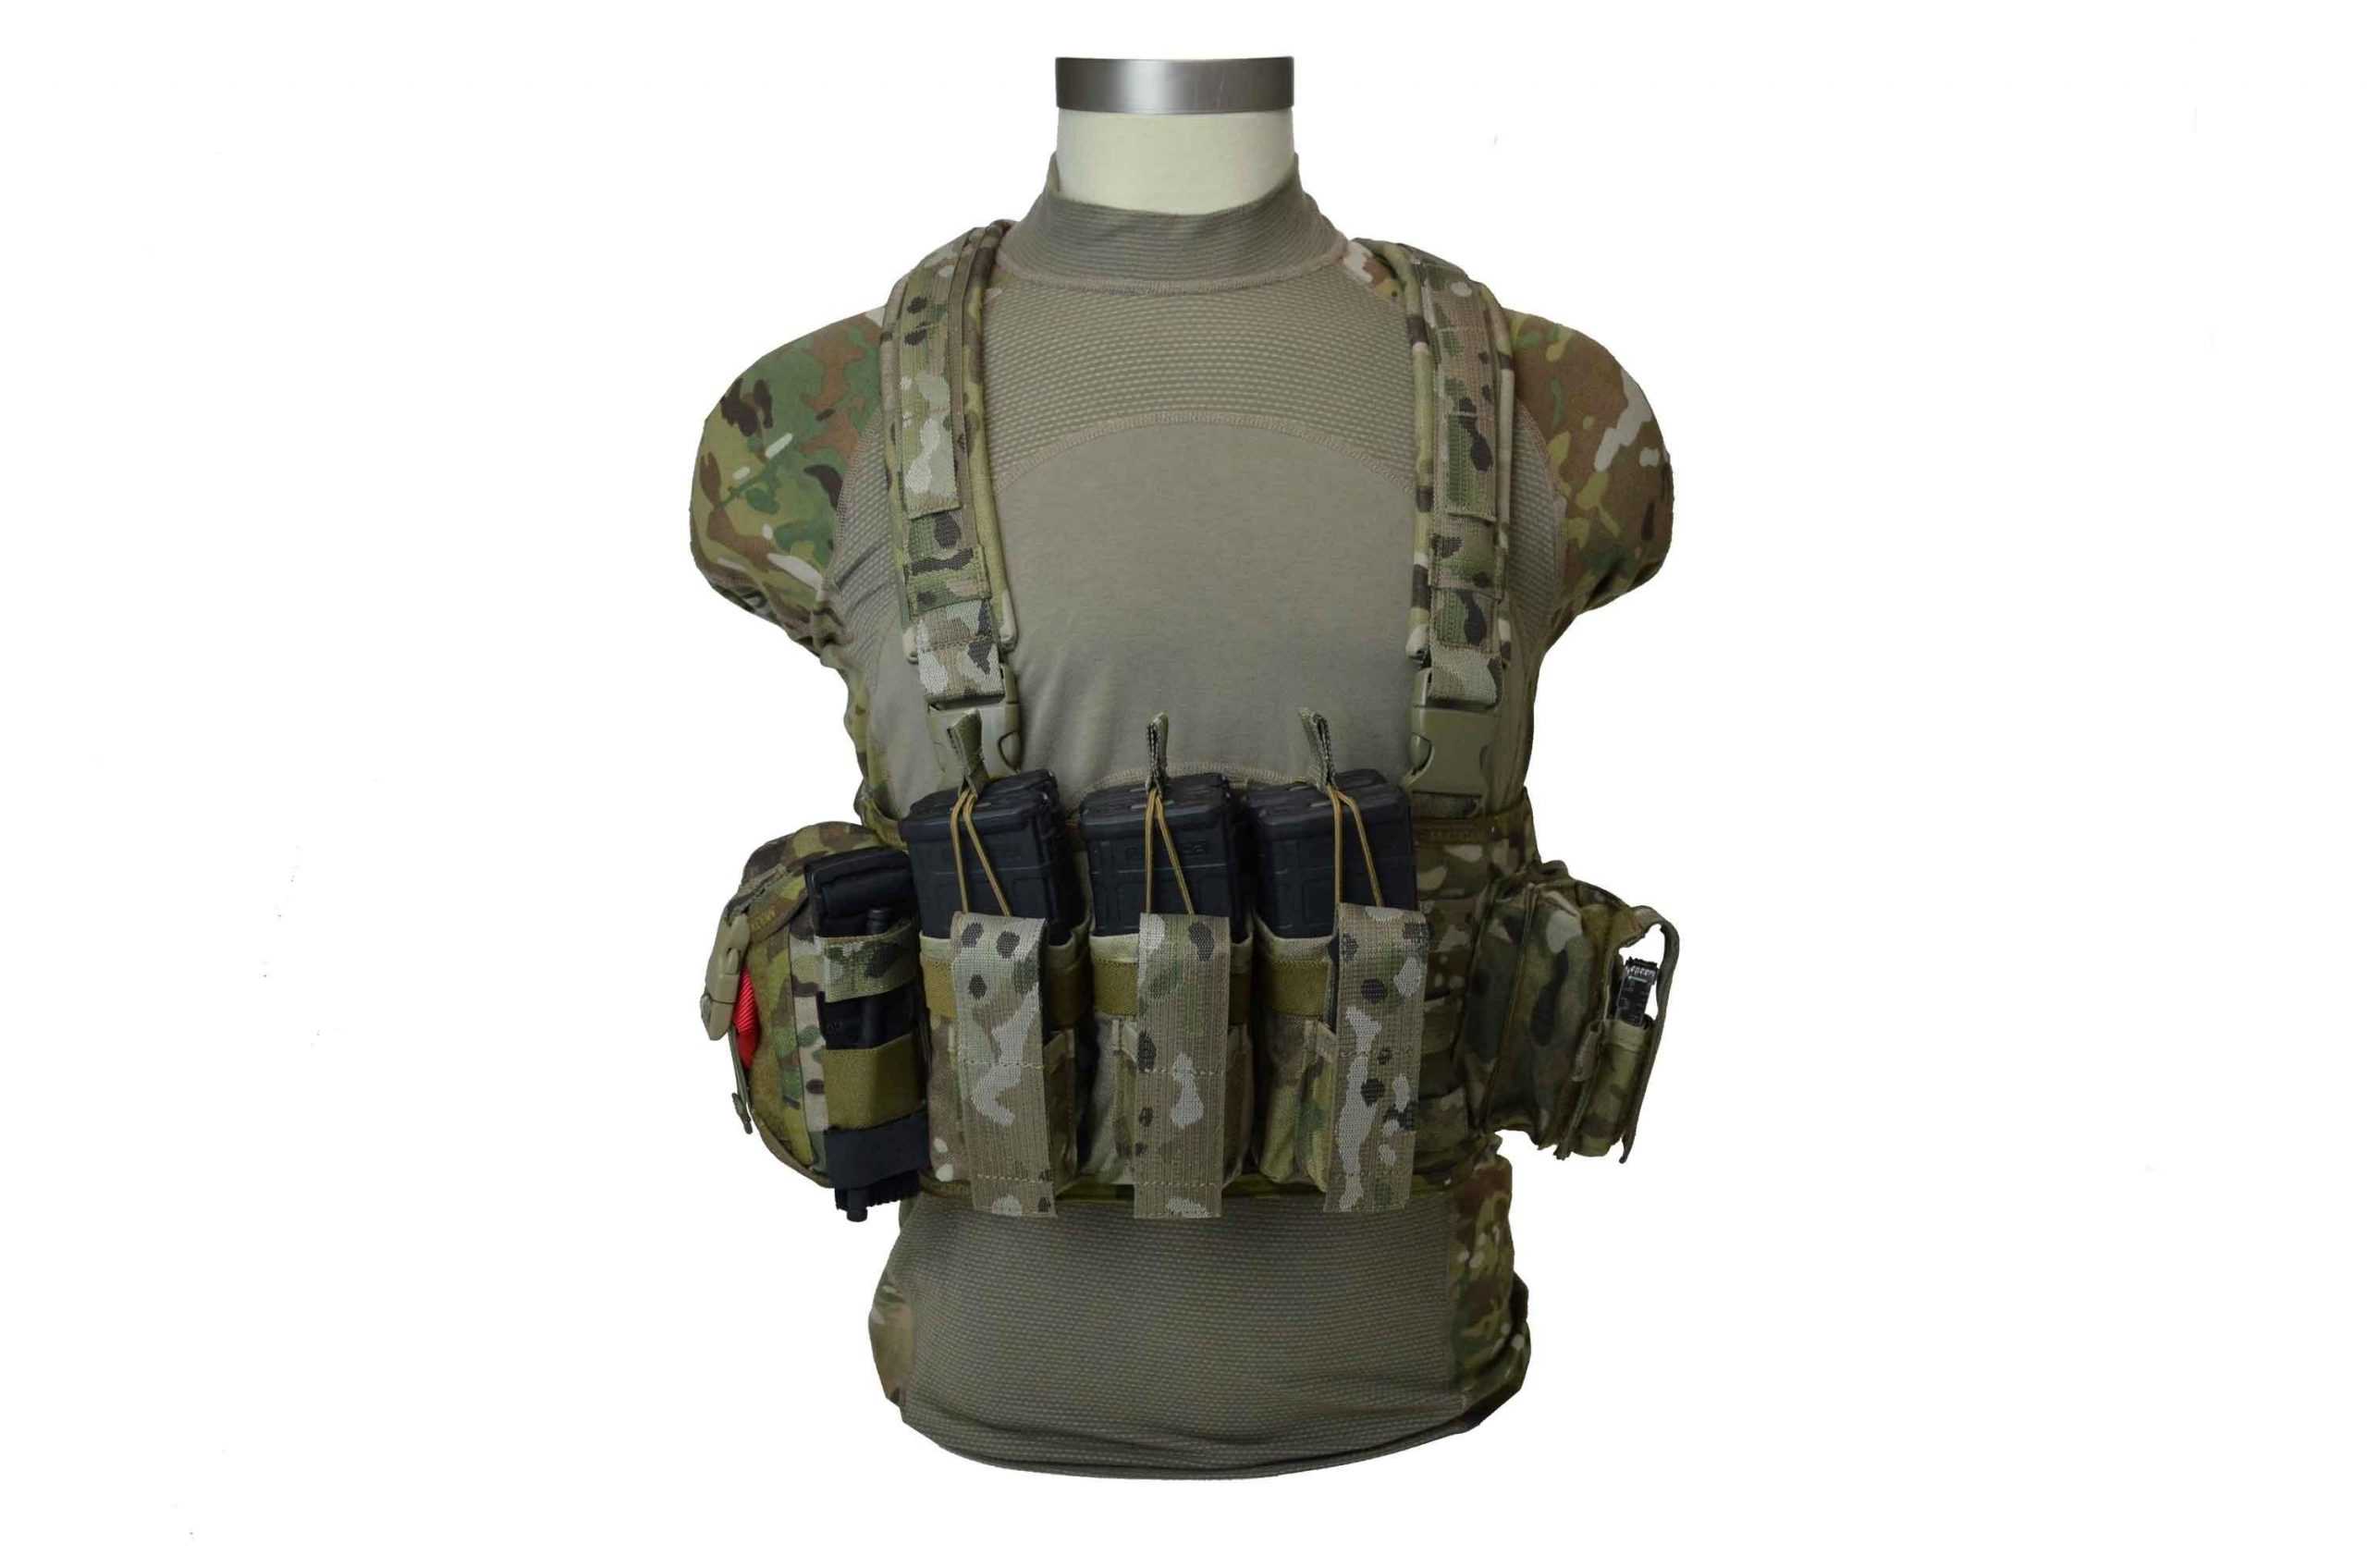 Last Resort Chest Rig